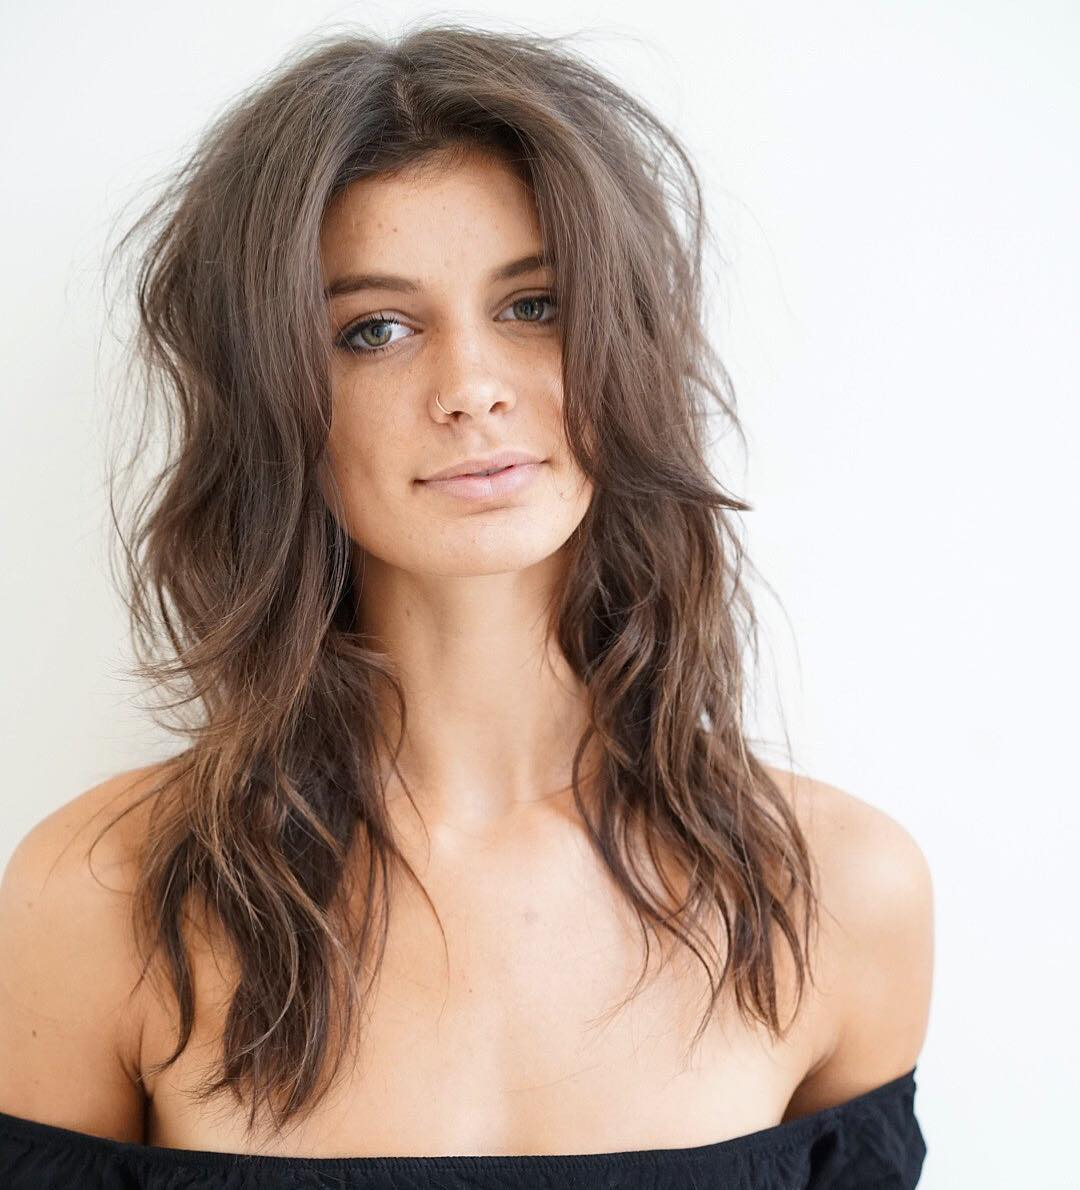 Boho Chic Shag With Long Curtain Bangs And Messy Beach Wavy Texture On Brown Hair The Latest Hairstyles For Men And Women 2020 Hairstyleology